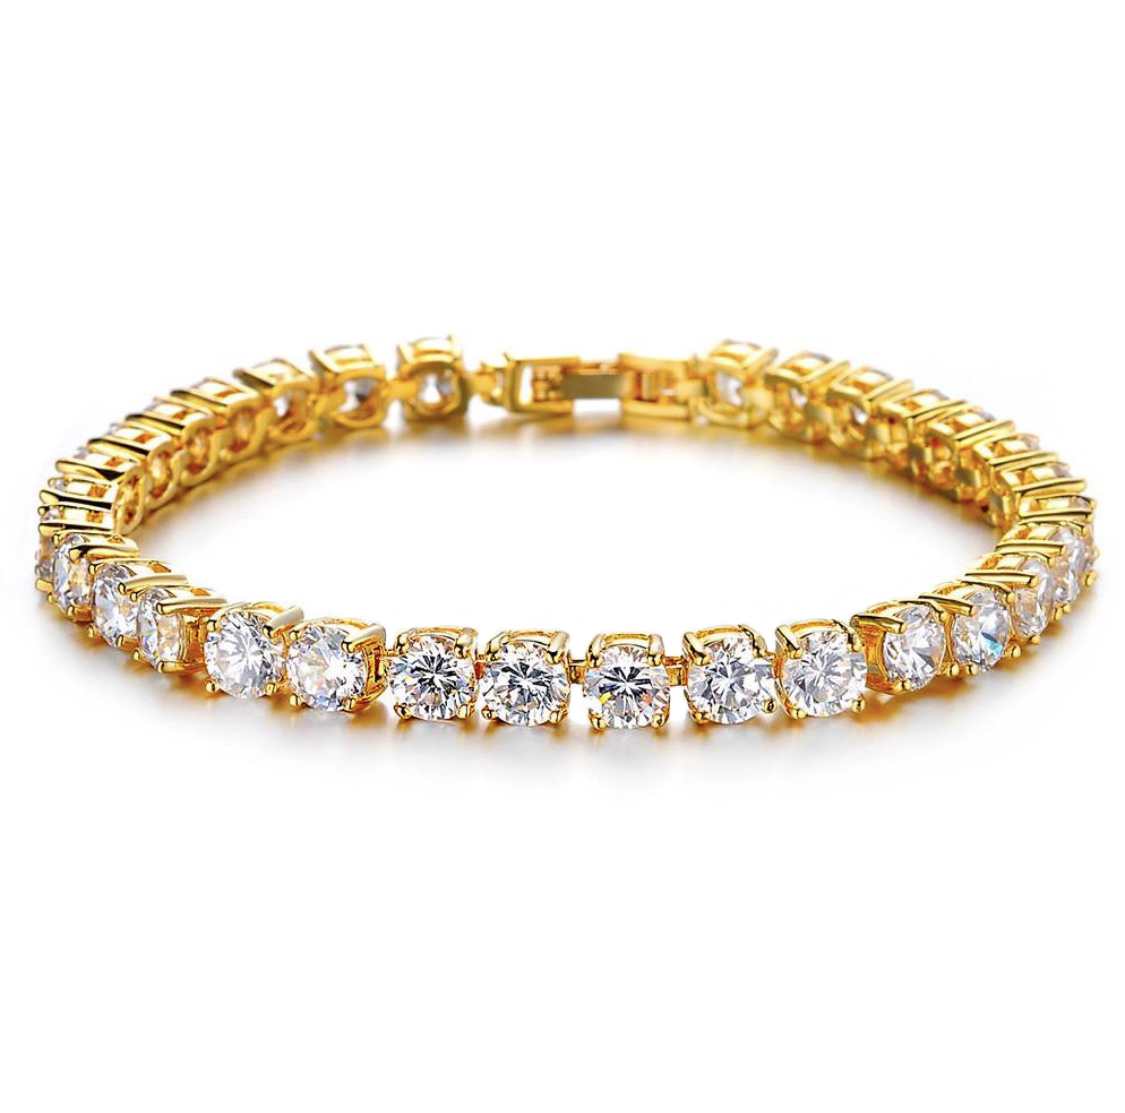 343ee2b73fedce VVS Tennis Bracelet Flawless Diamonds - ShopVVS ...